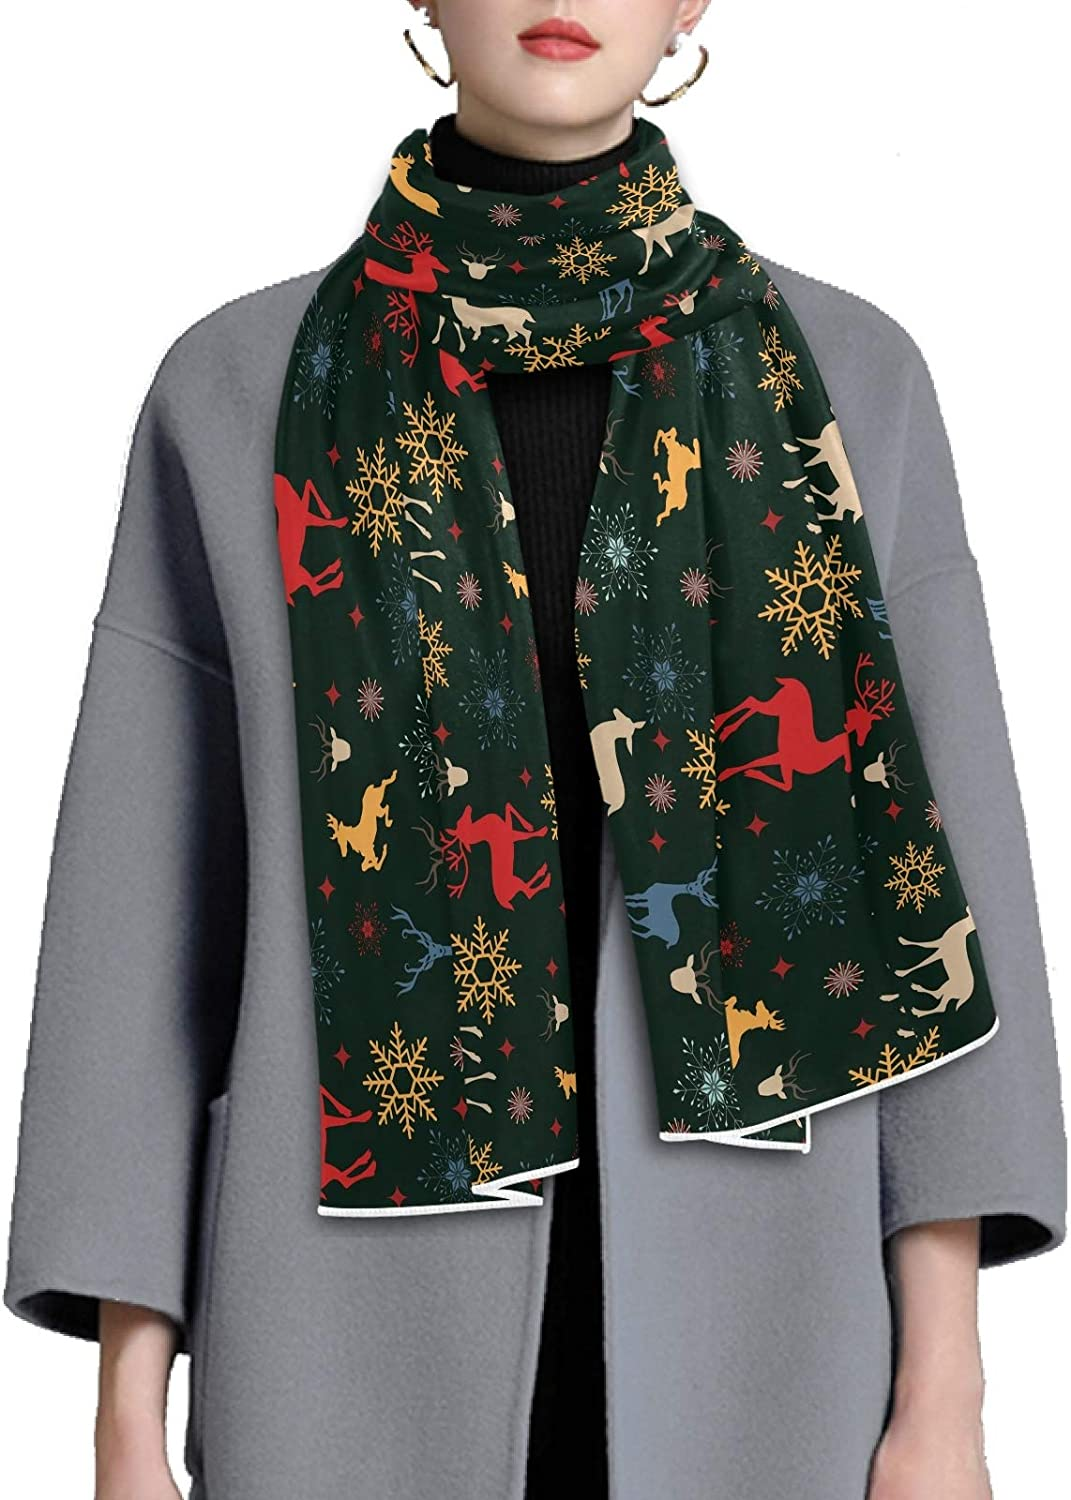 Scarf for Women and Men Christmas Reindeer Blanket Shawl Scarves Wraps Thick Soft Winter Large Scarves Lightweight